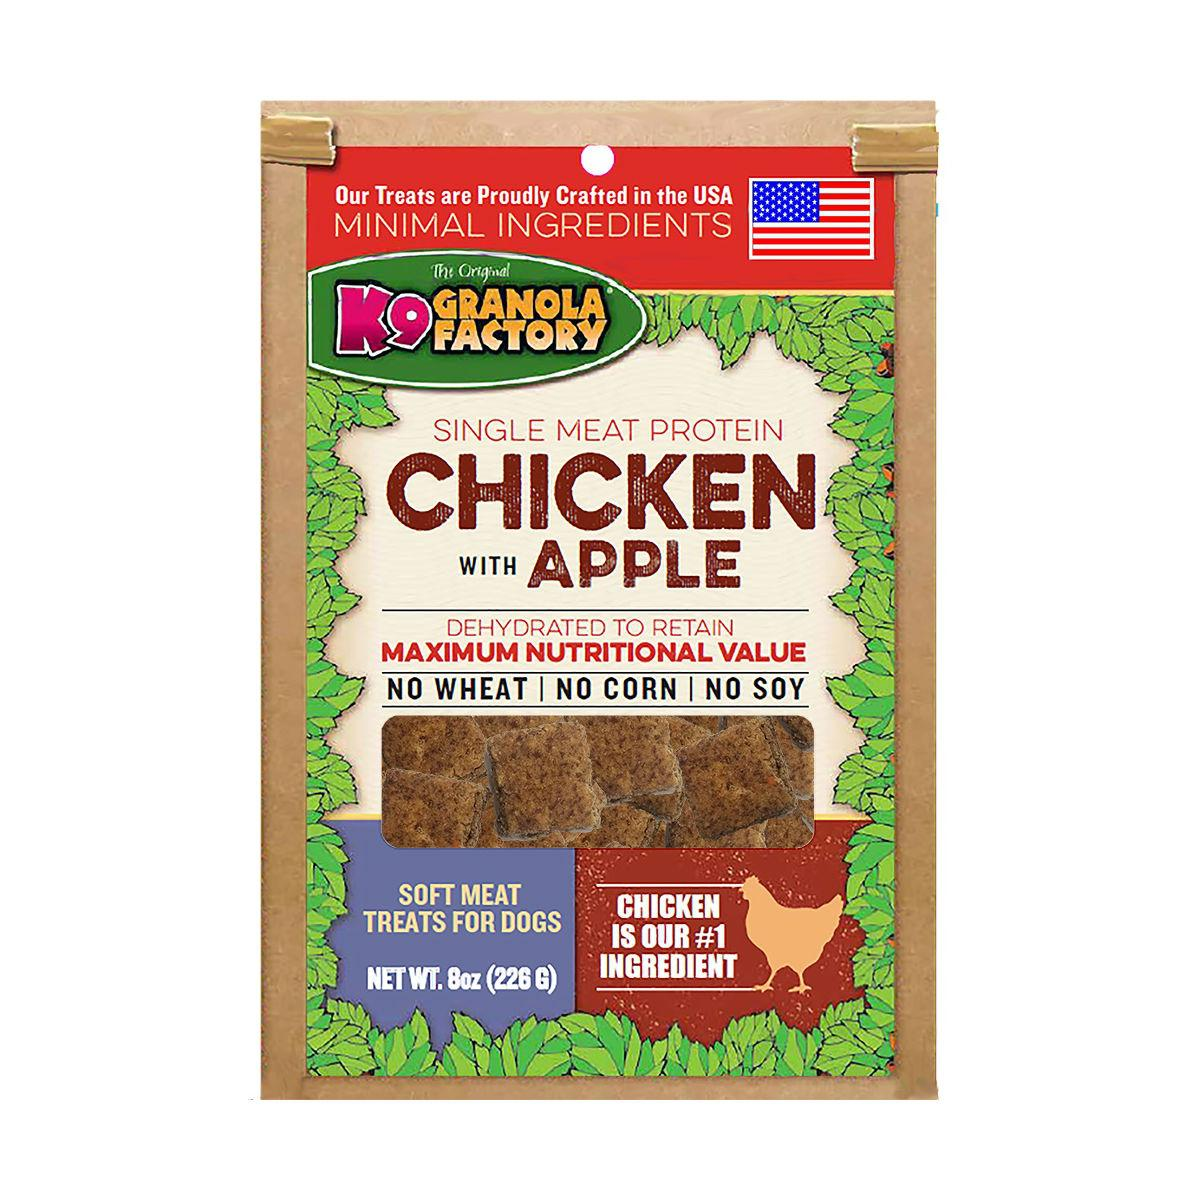 K9 Granola Factory Soft Meat Dehydrated Dog Treat - Chicken with Apple